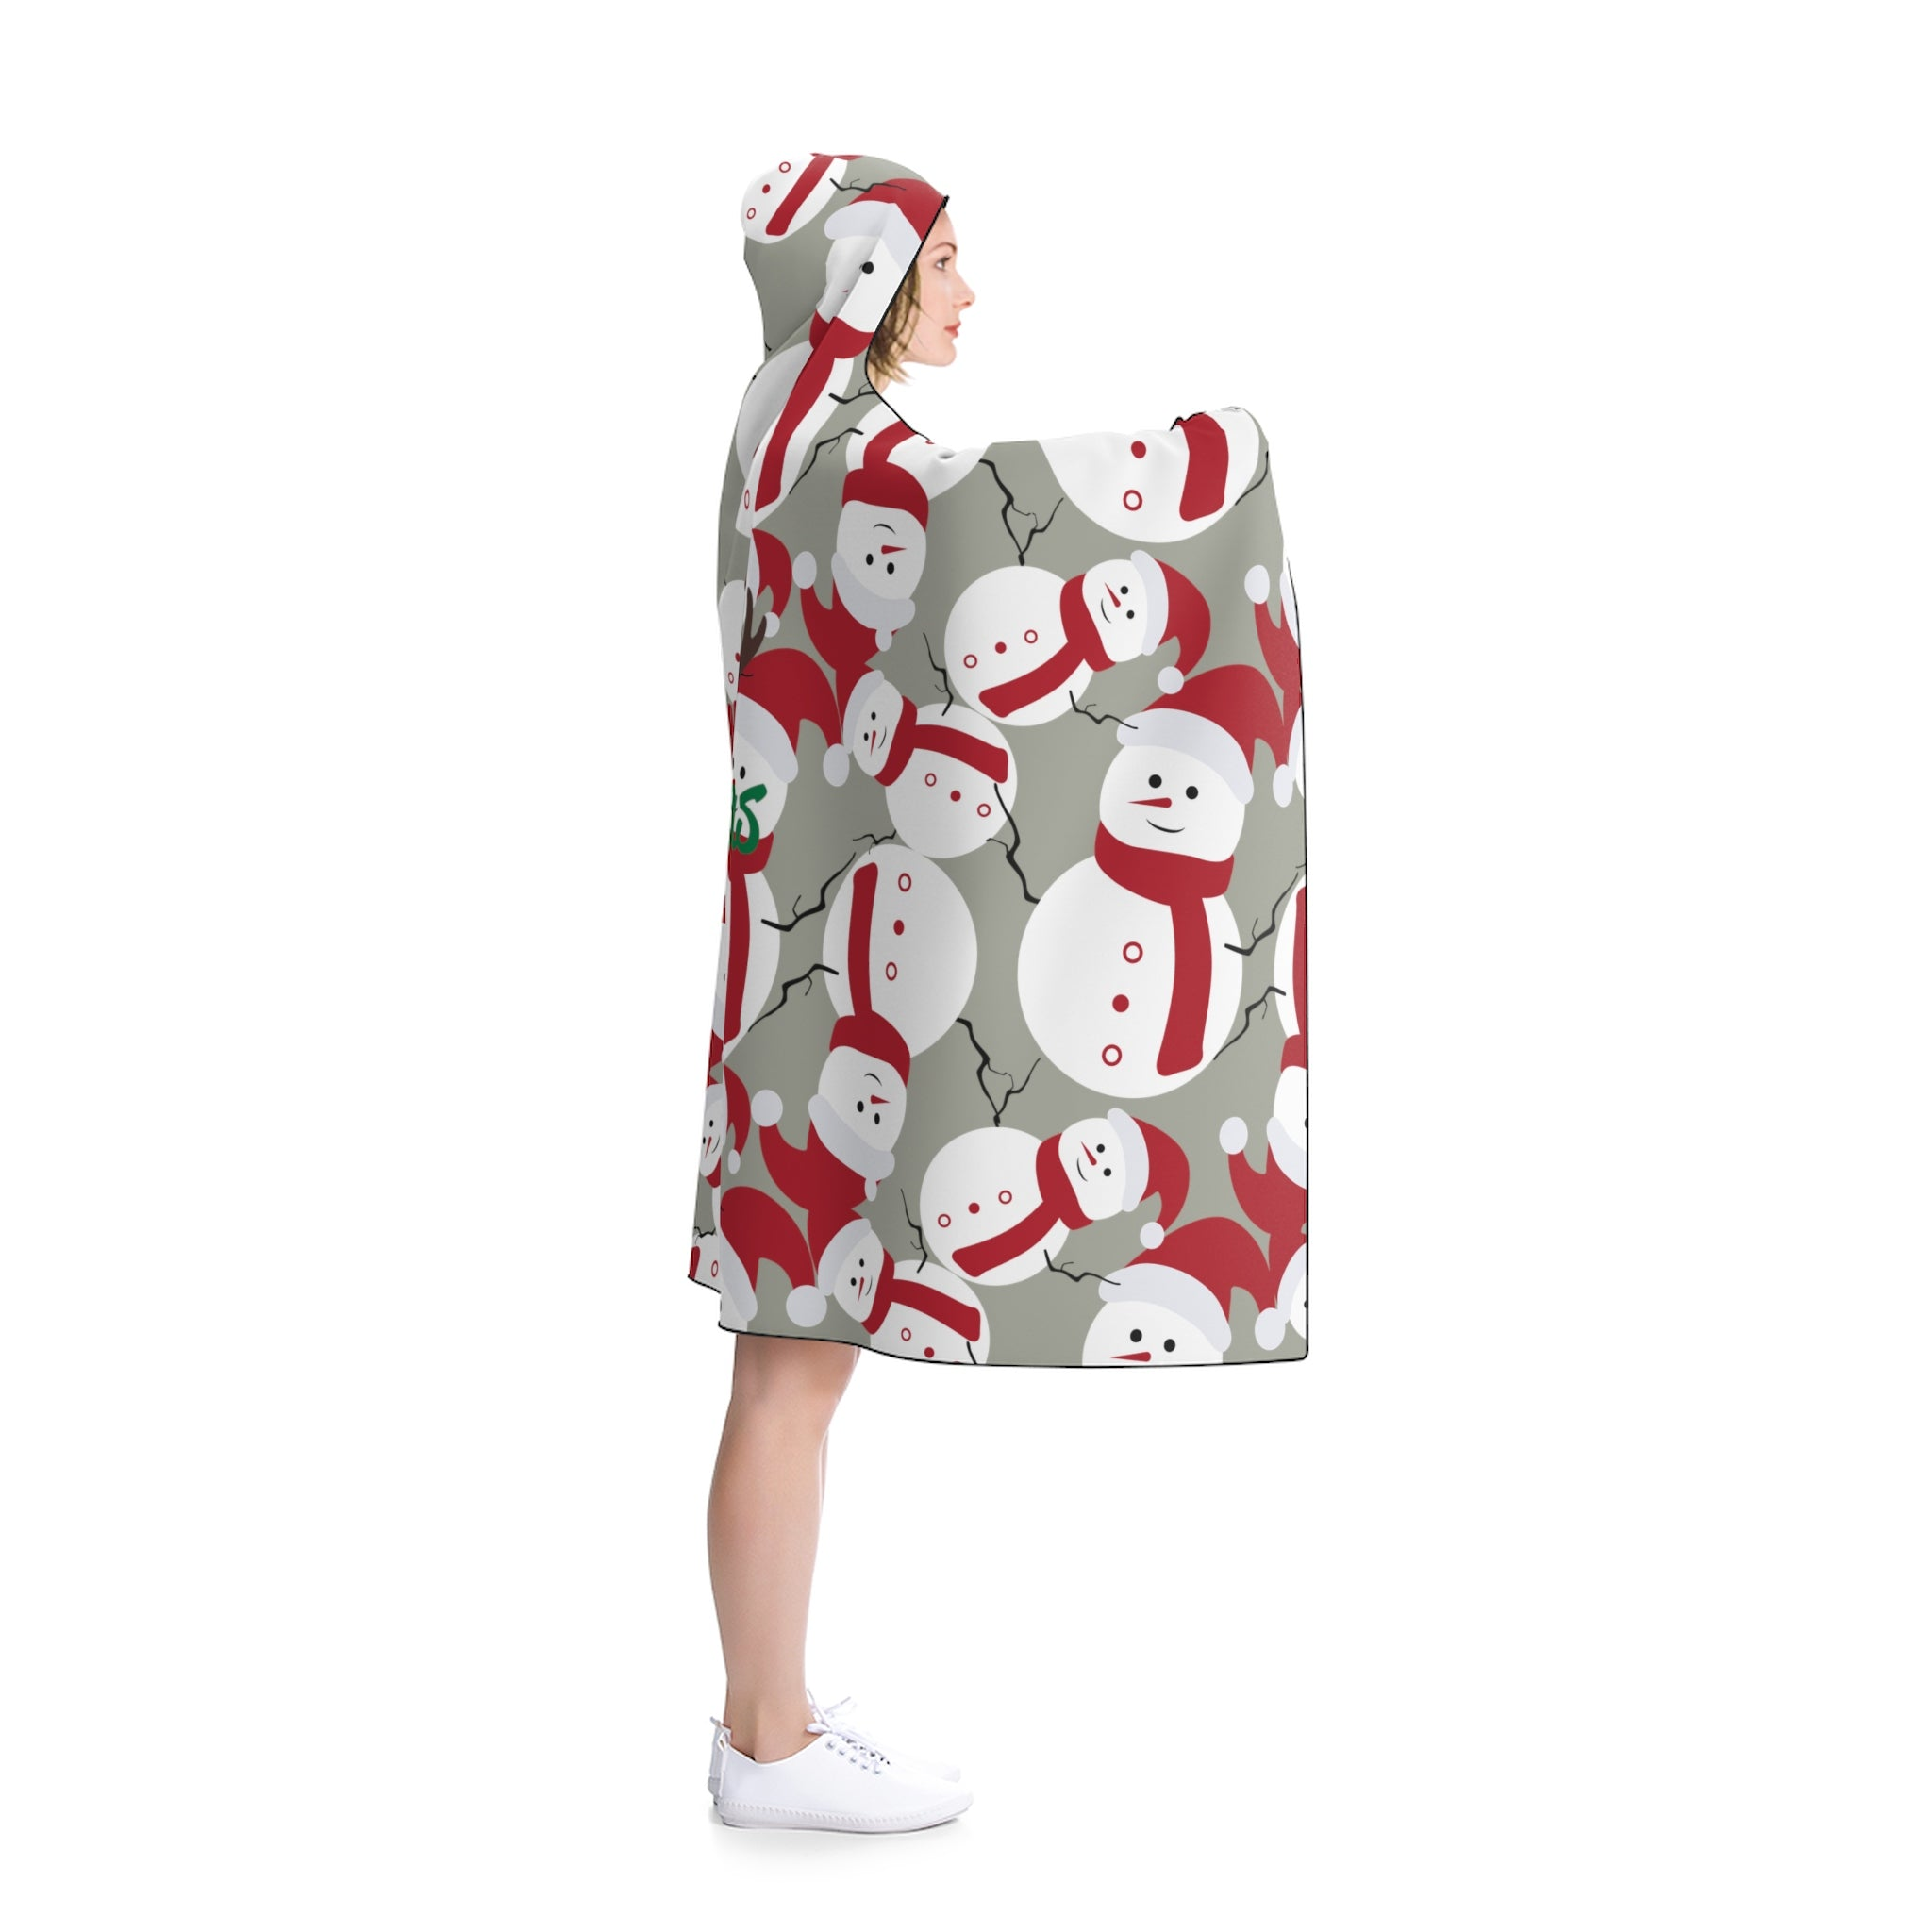 Gray Lightweight Christmas Red Snowman Designer Holiday Party Hooded Blanket-Hooded Blanket-80x56-Heidi Kimura Art LLC